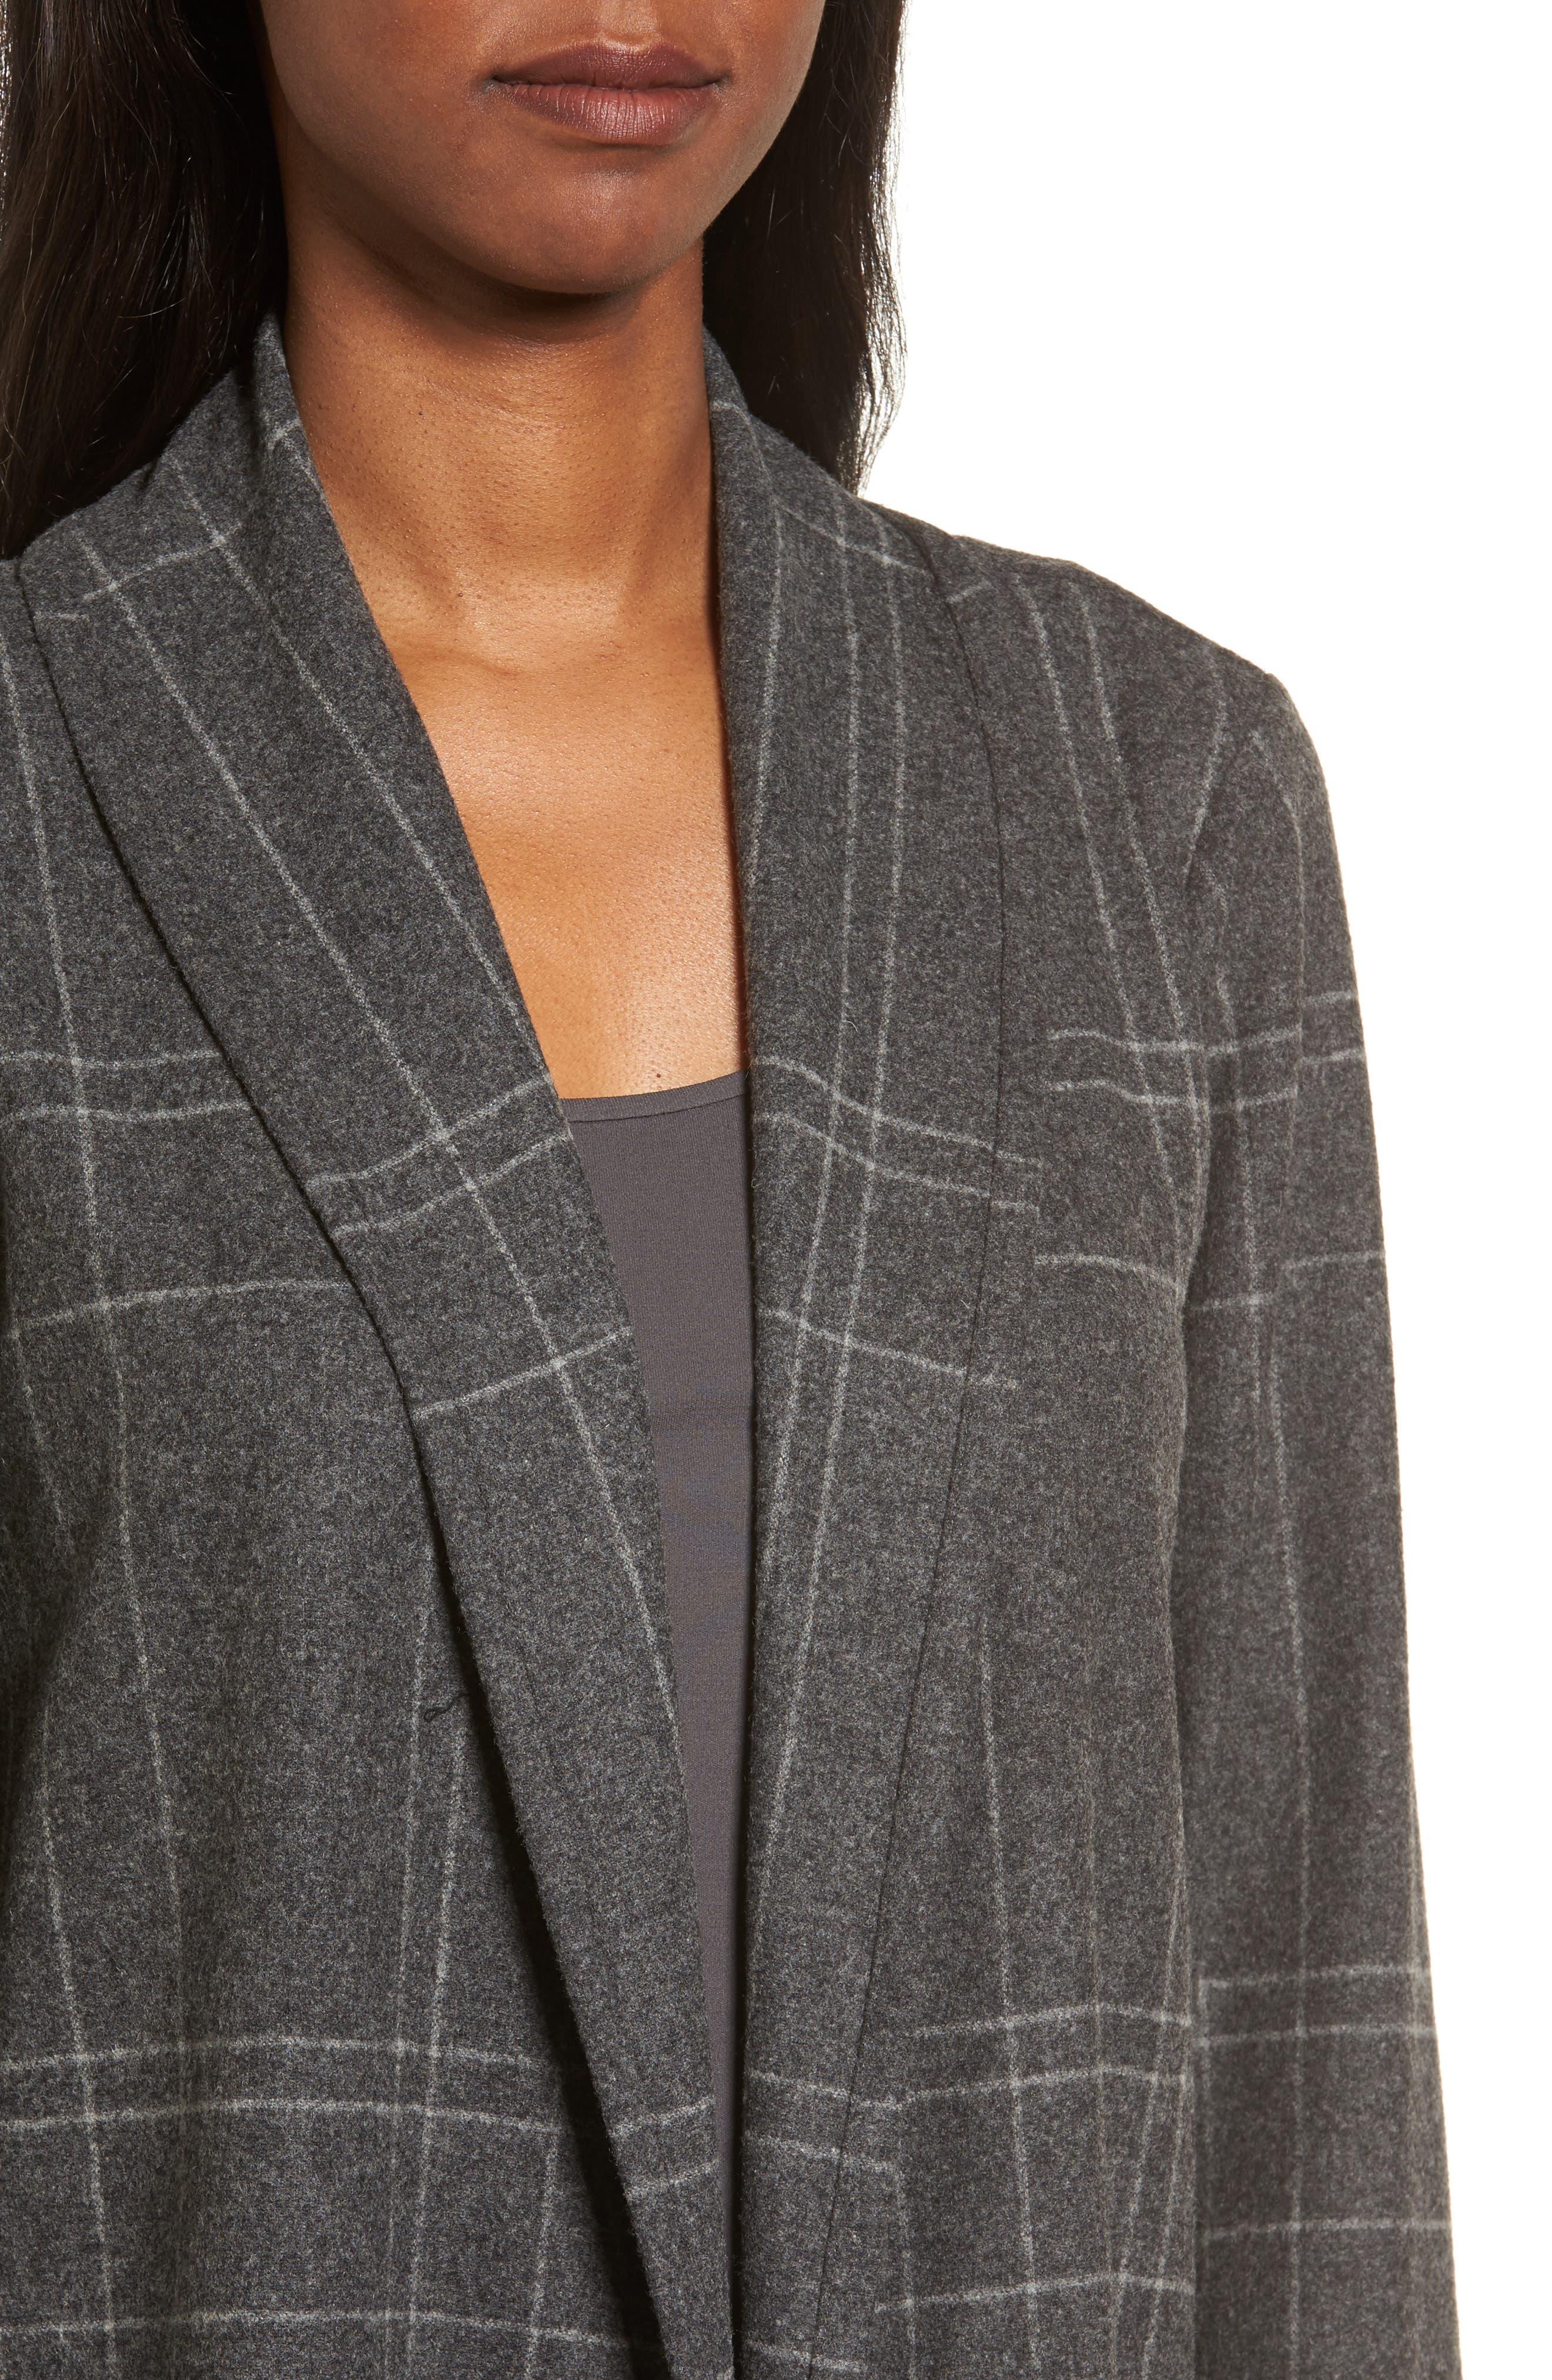 Plaid Kimono Jacket,                             Alternate thumbnail 4, color,                             Dark Ash